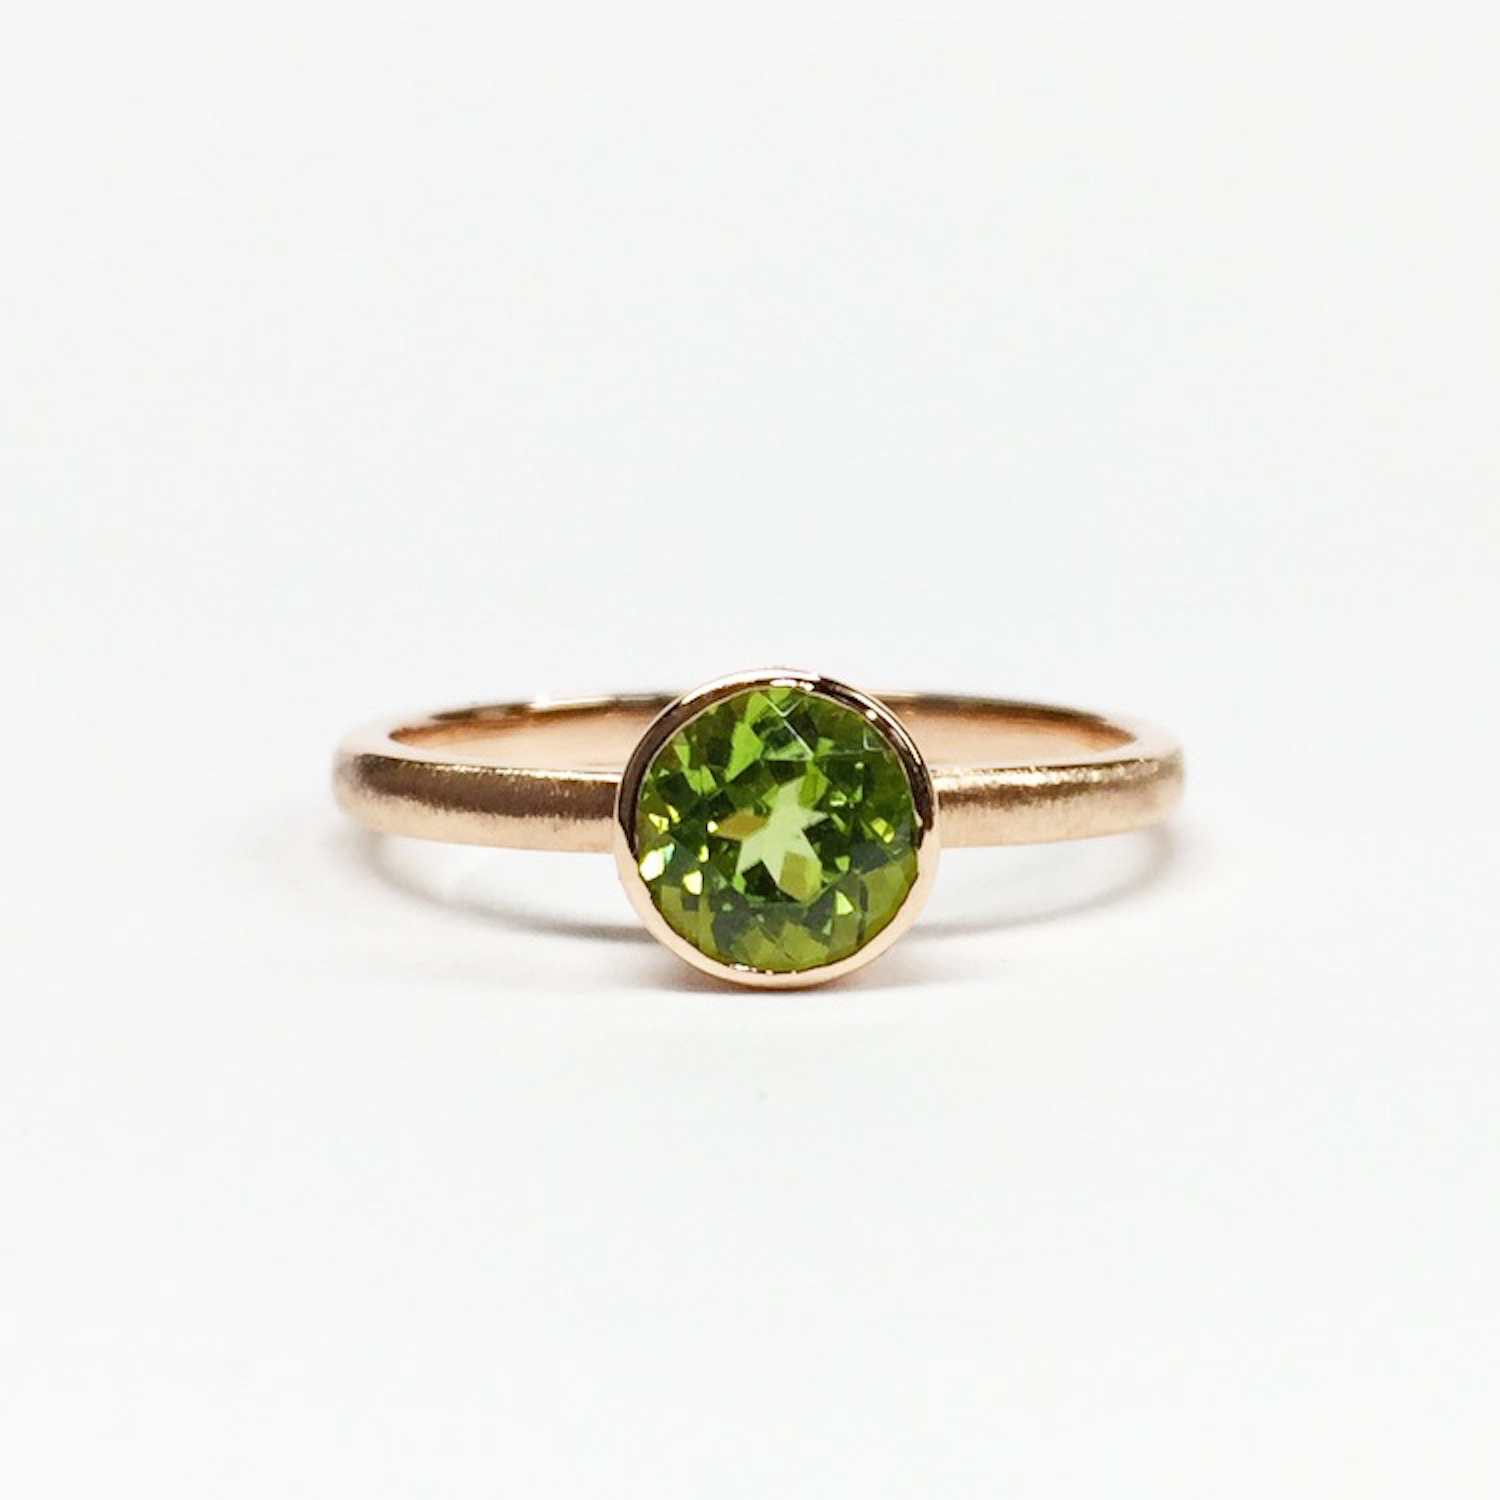 Simple handmade ring in rose gold bezel-set with a beautiful peridot.